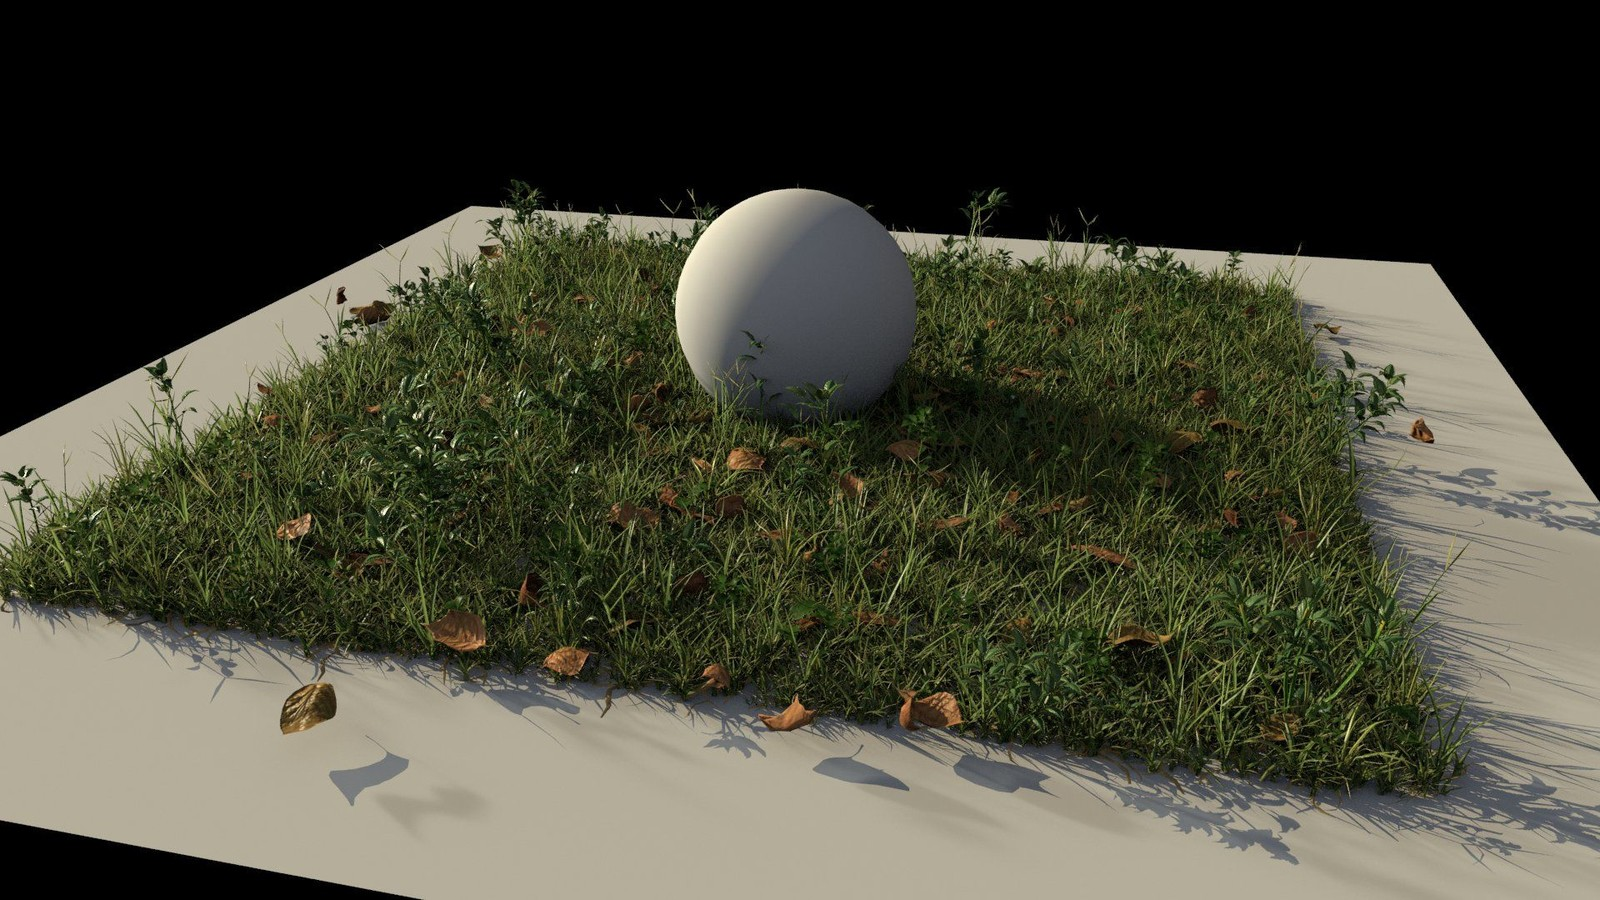 Early Look Development - Testing placement tool and validating the look of different types of grass